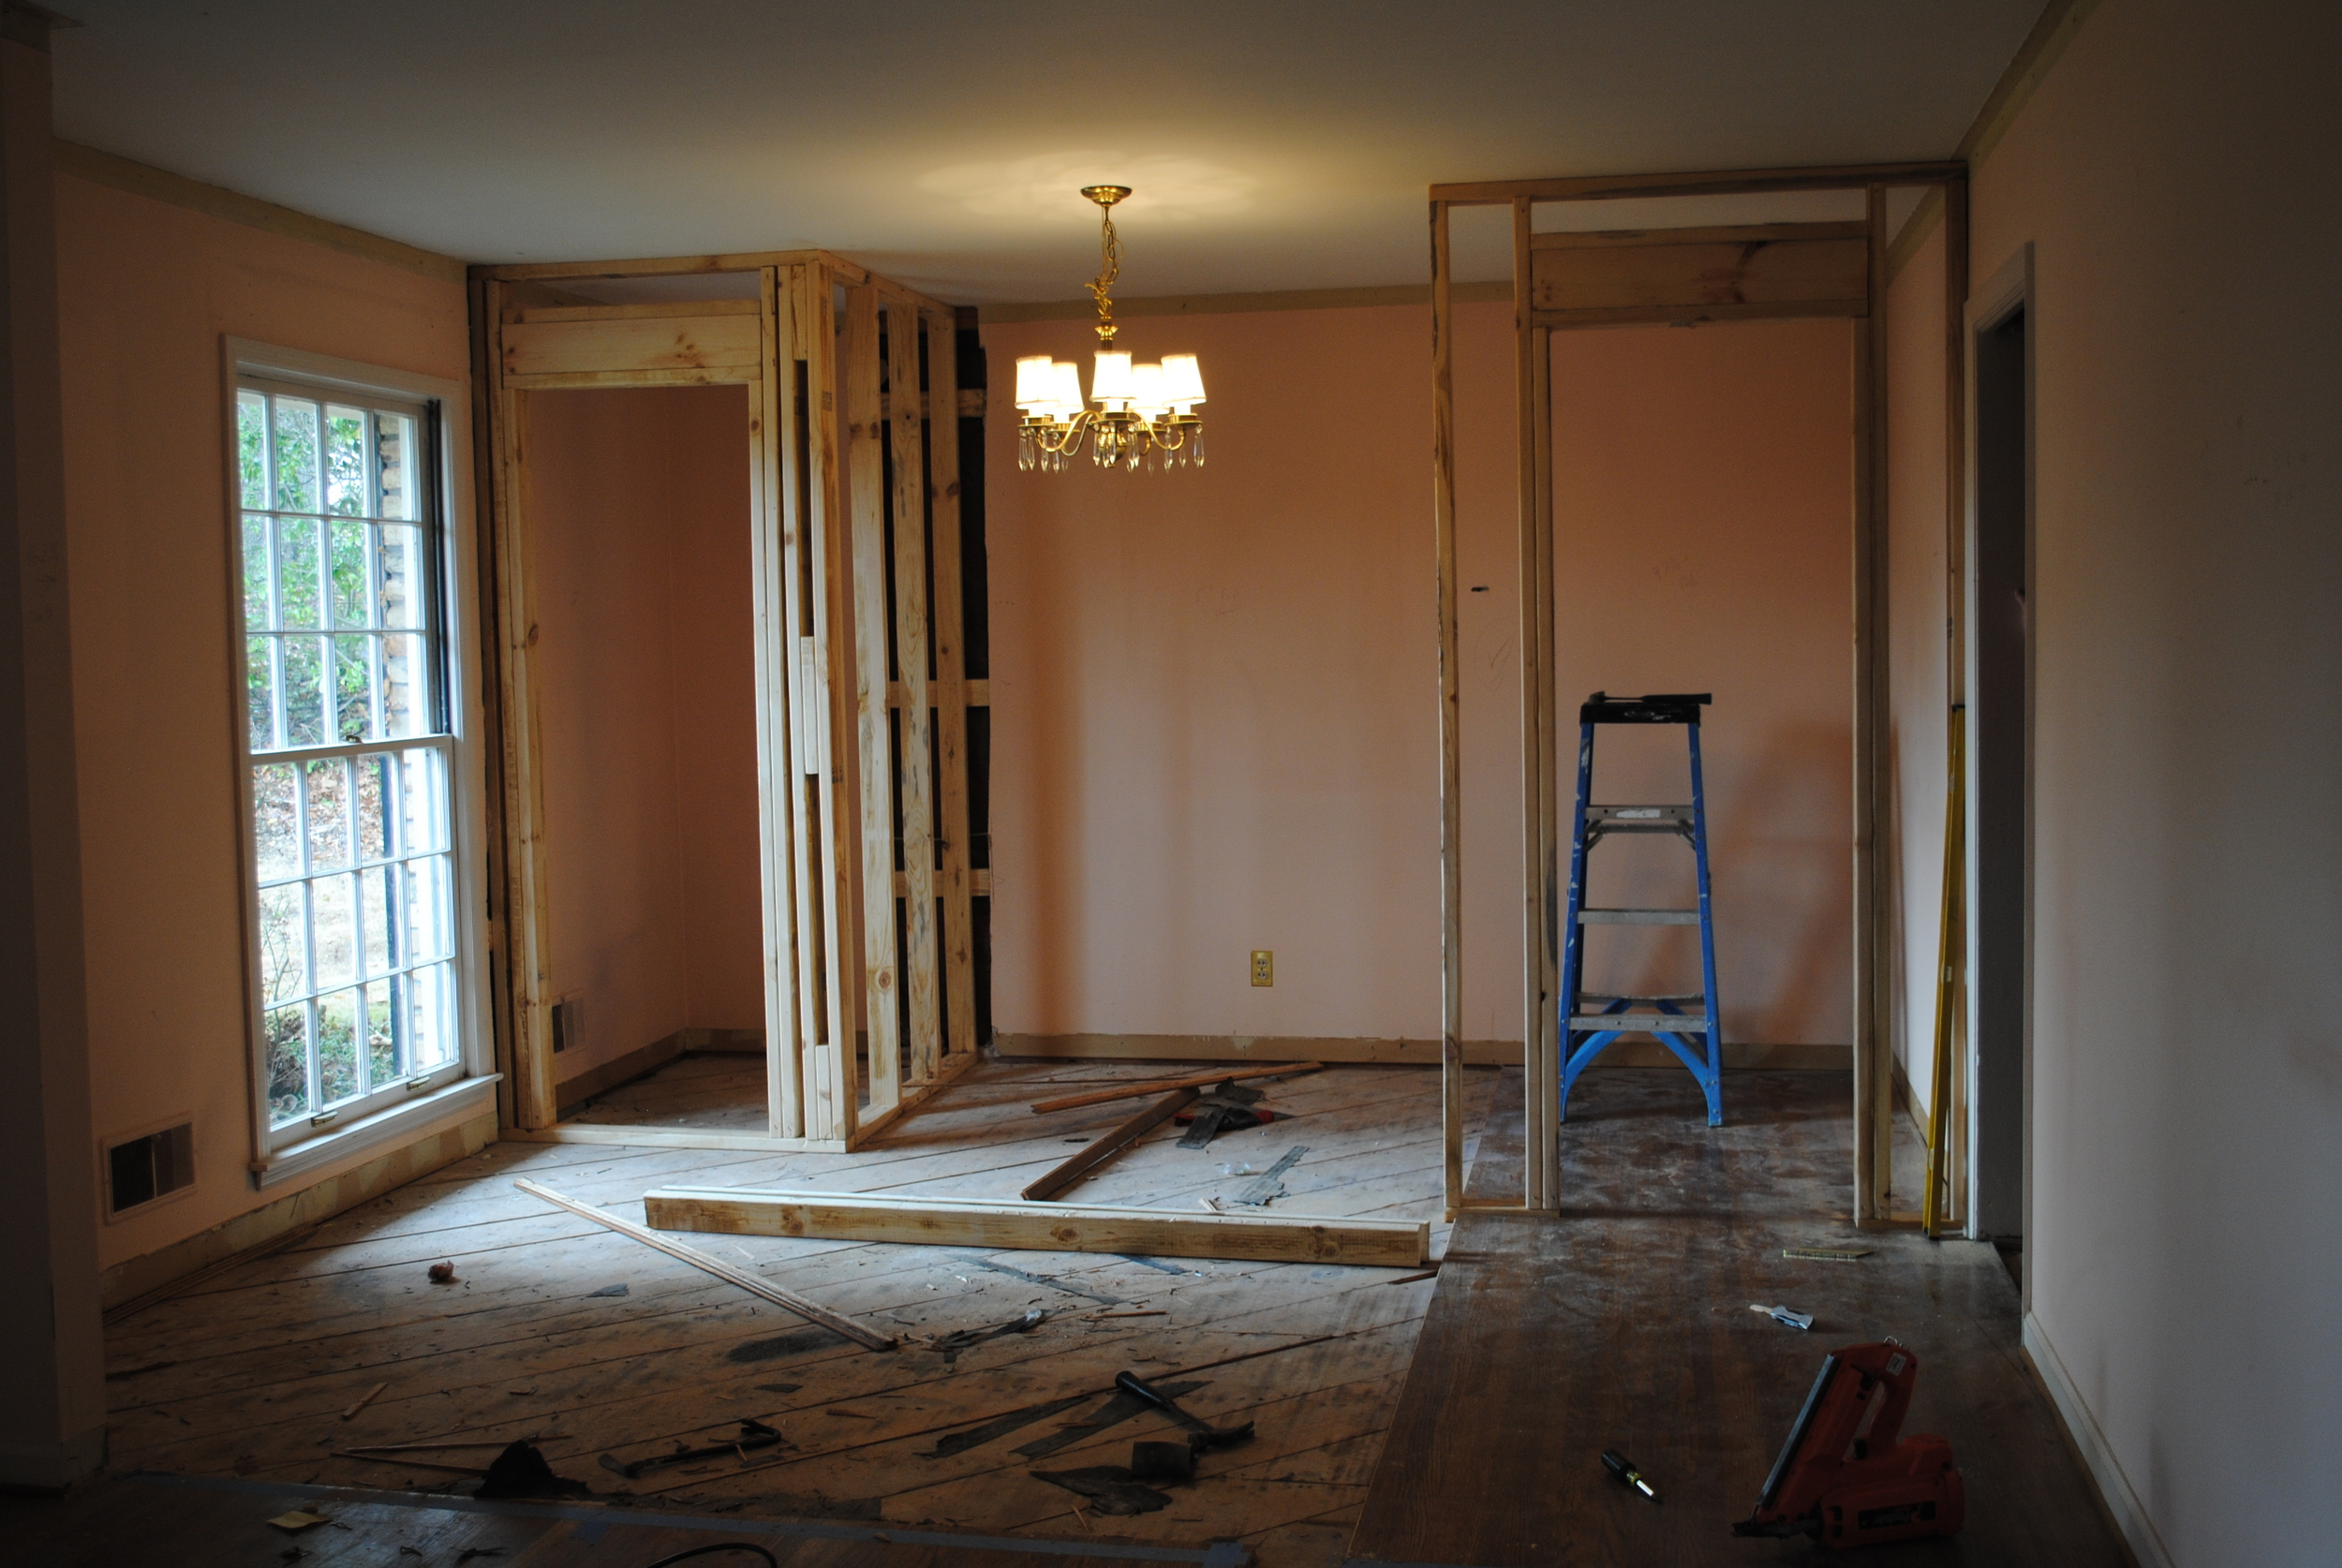 Dining Room/Formal Living Room Space